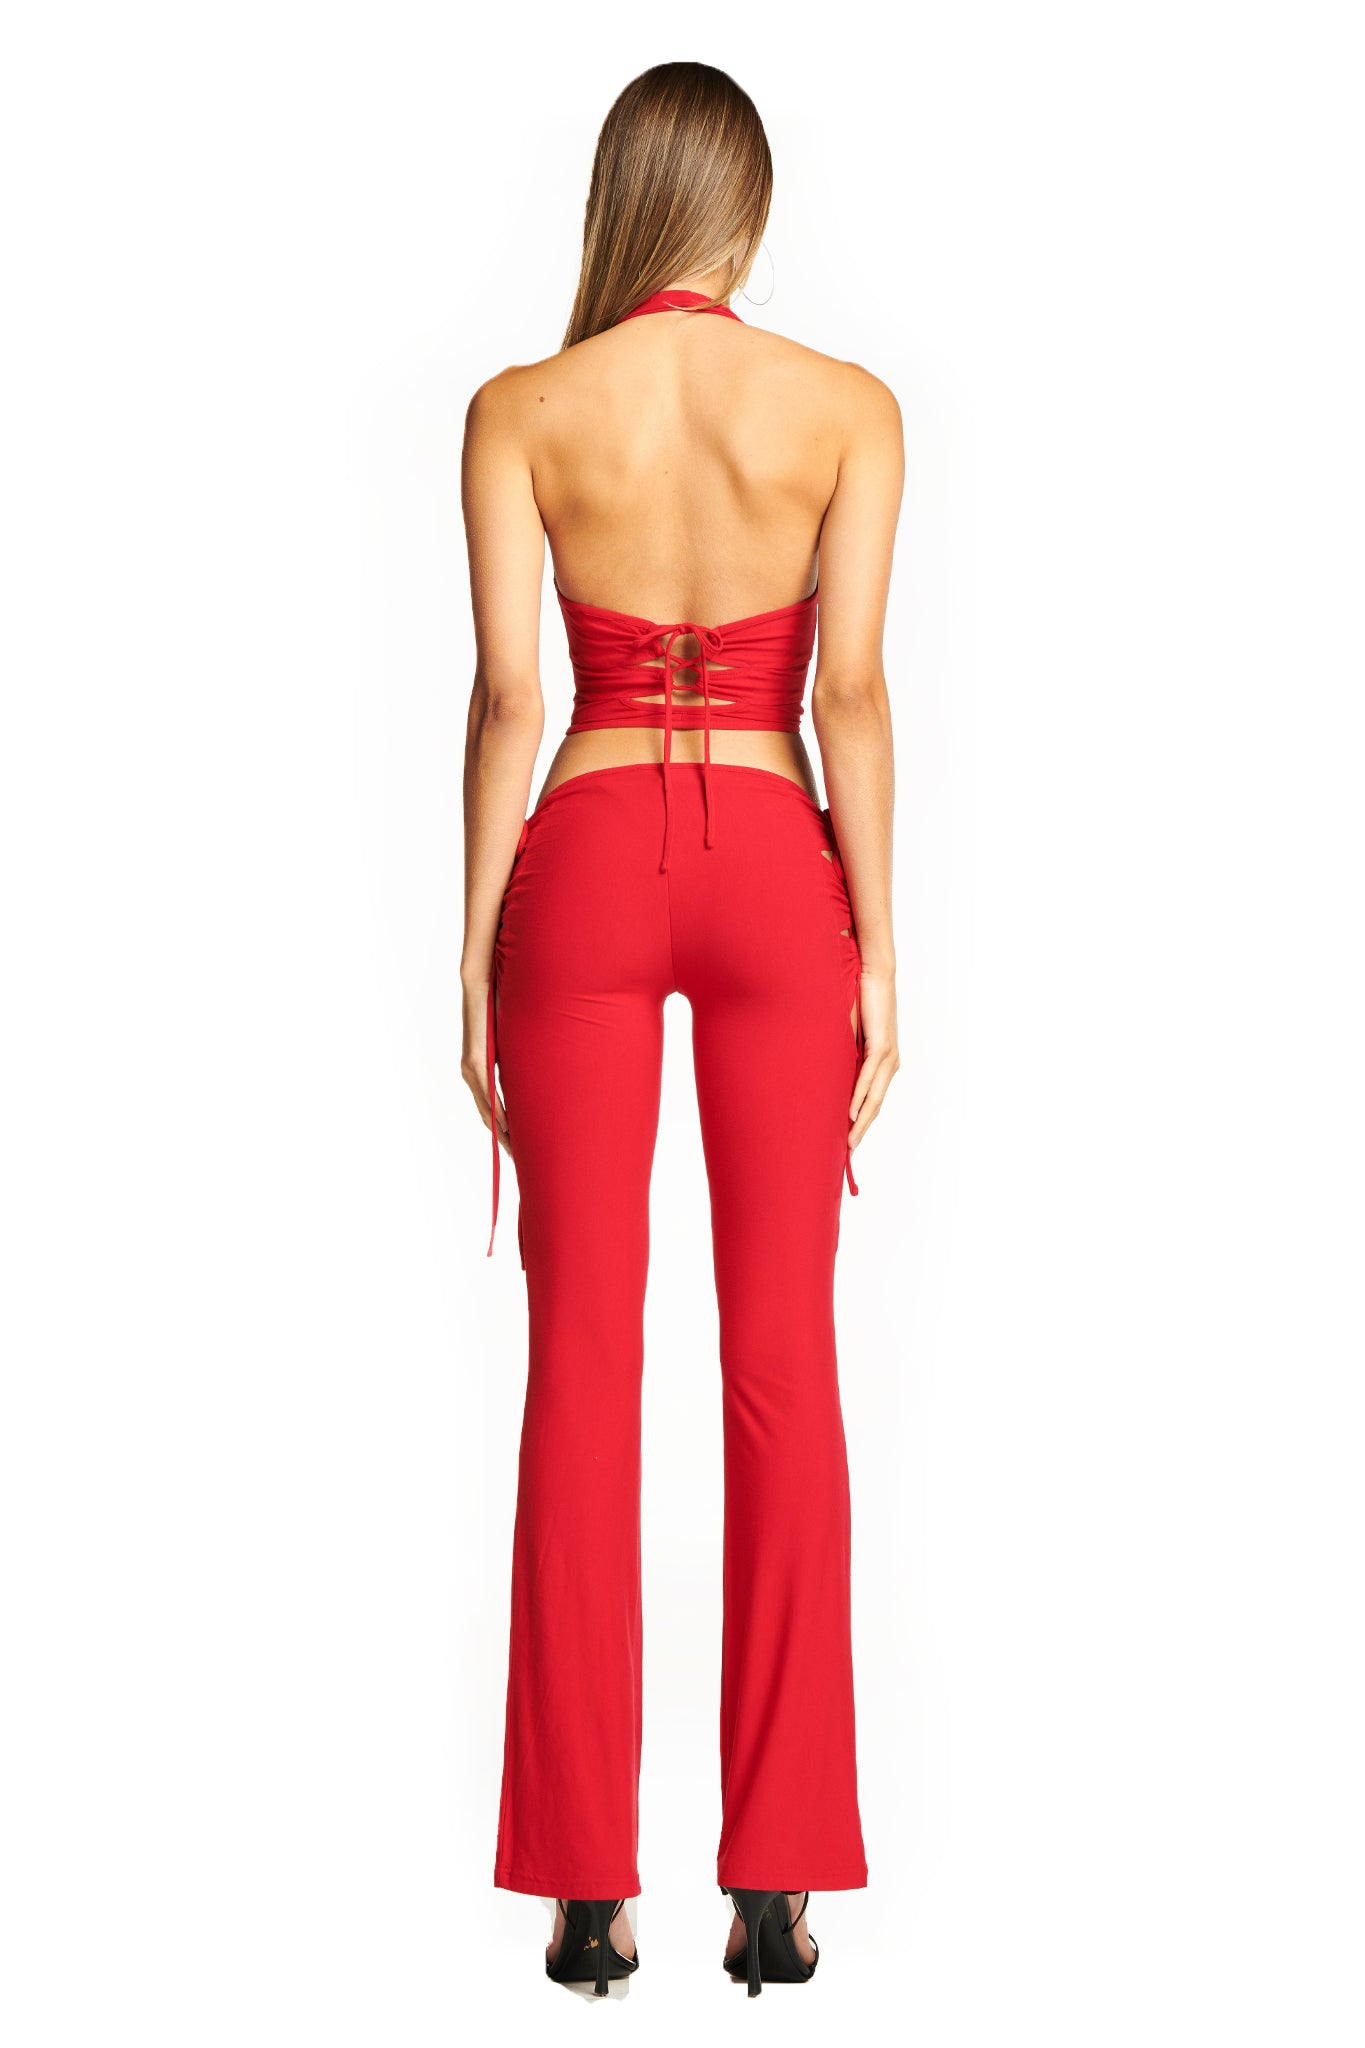 ANTIA PANT - RED